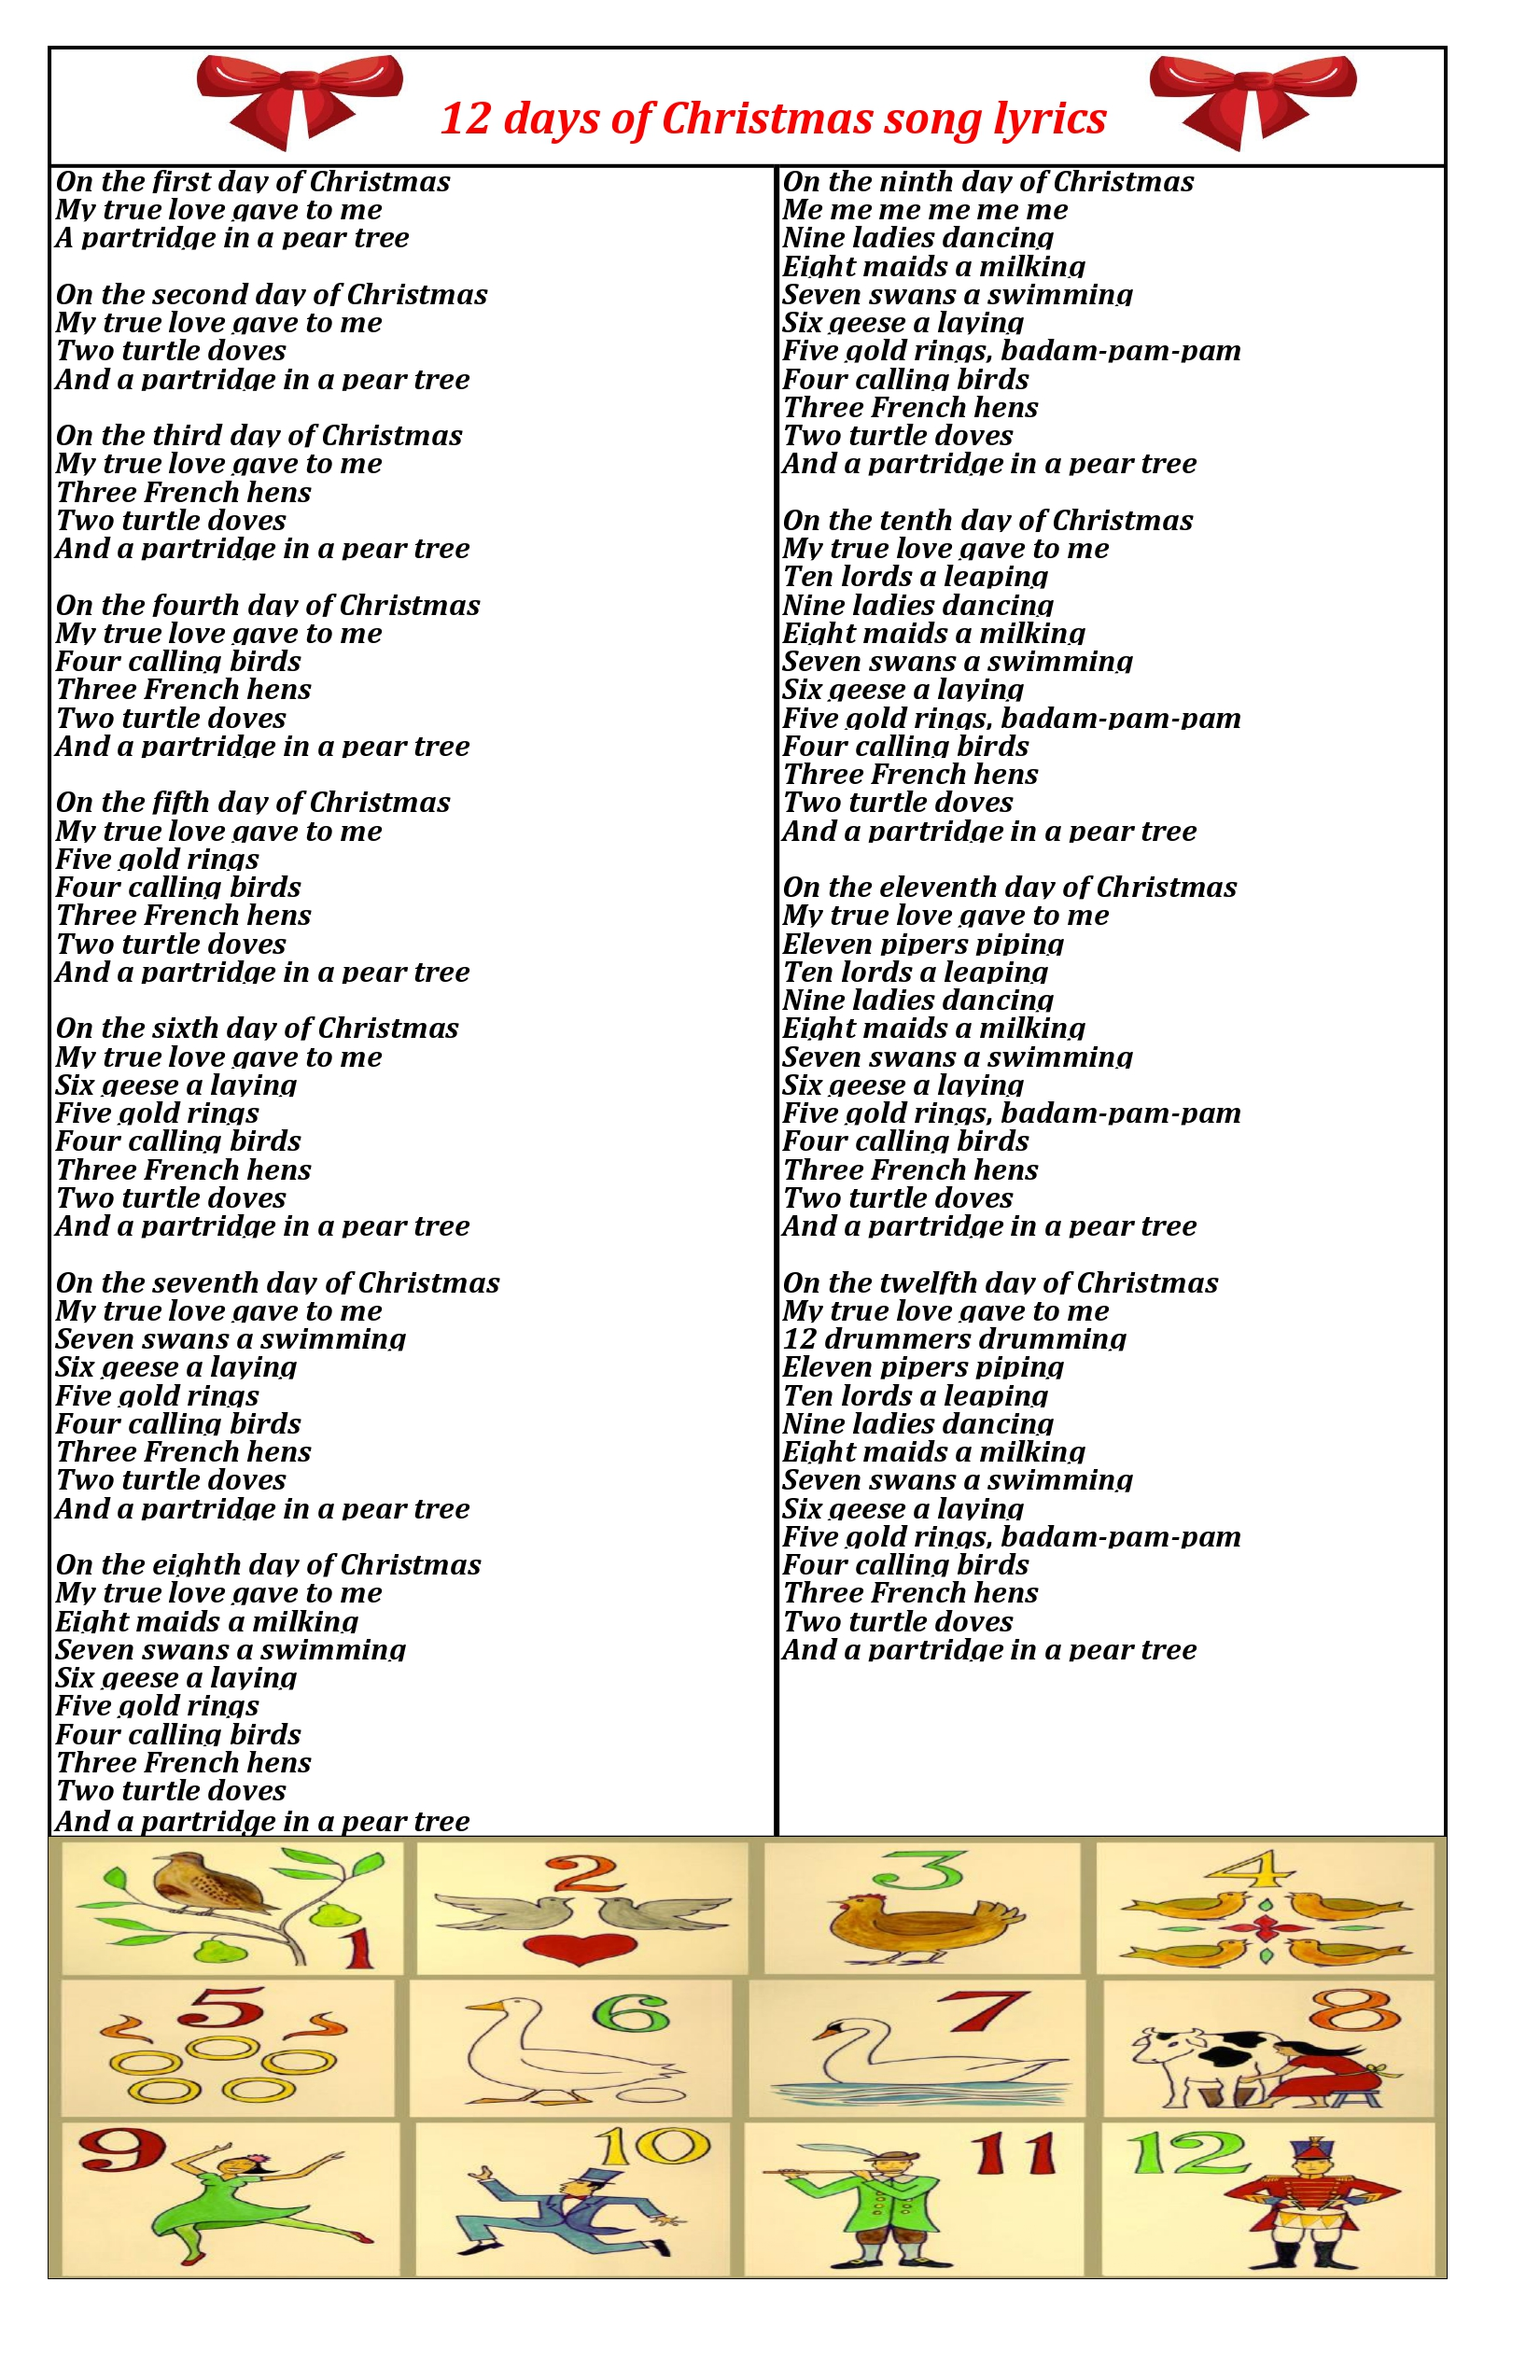 12 days of christmas lyrics PDF